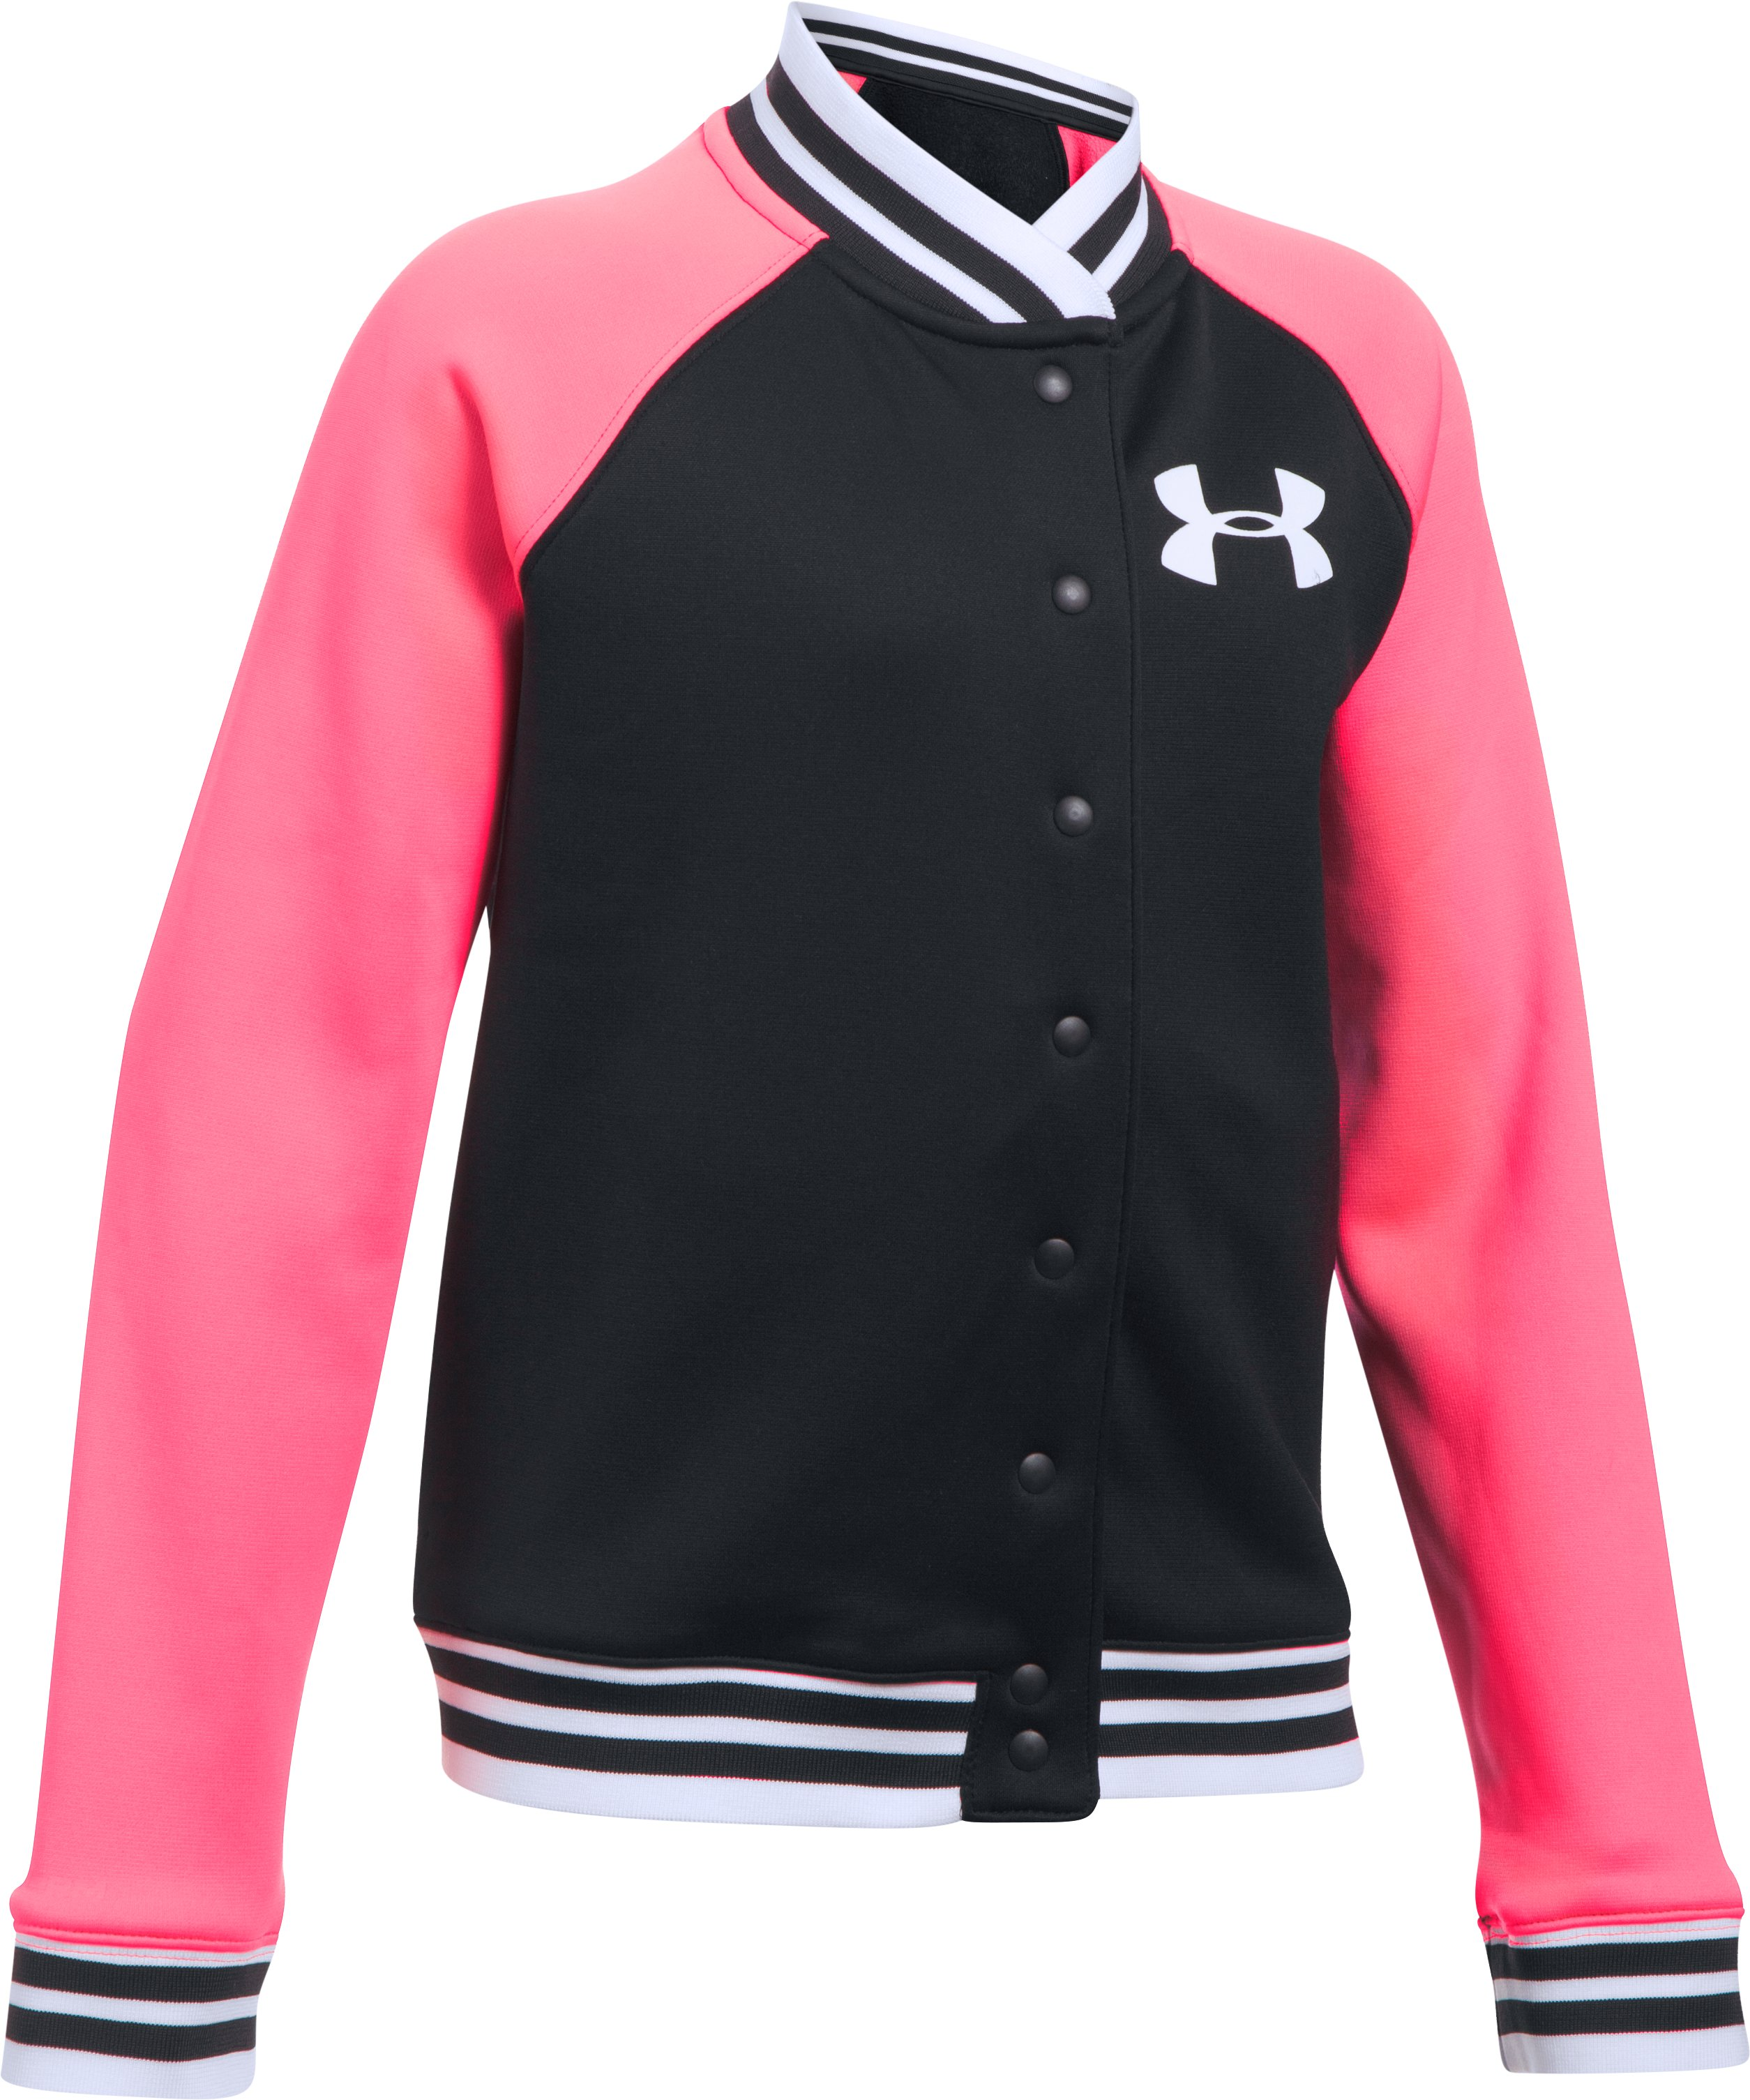 Girls' Armour Fleece® Graphic Bomber 3 Colors $35.99 - $41.99